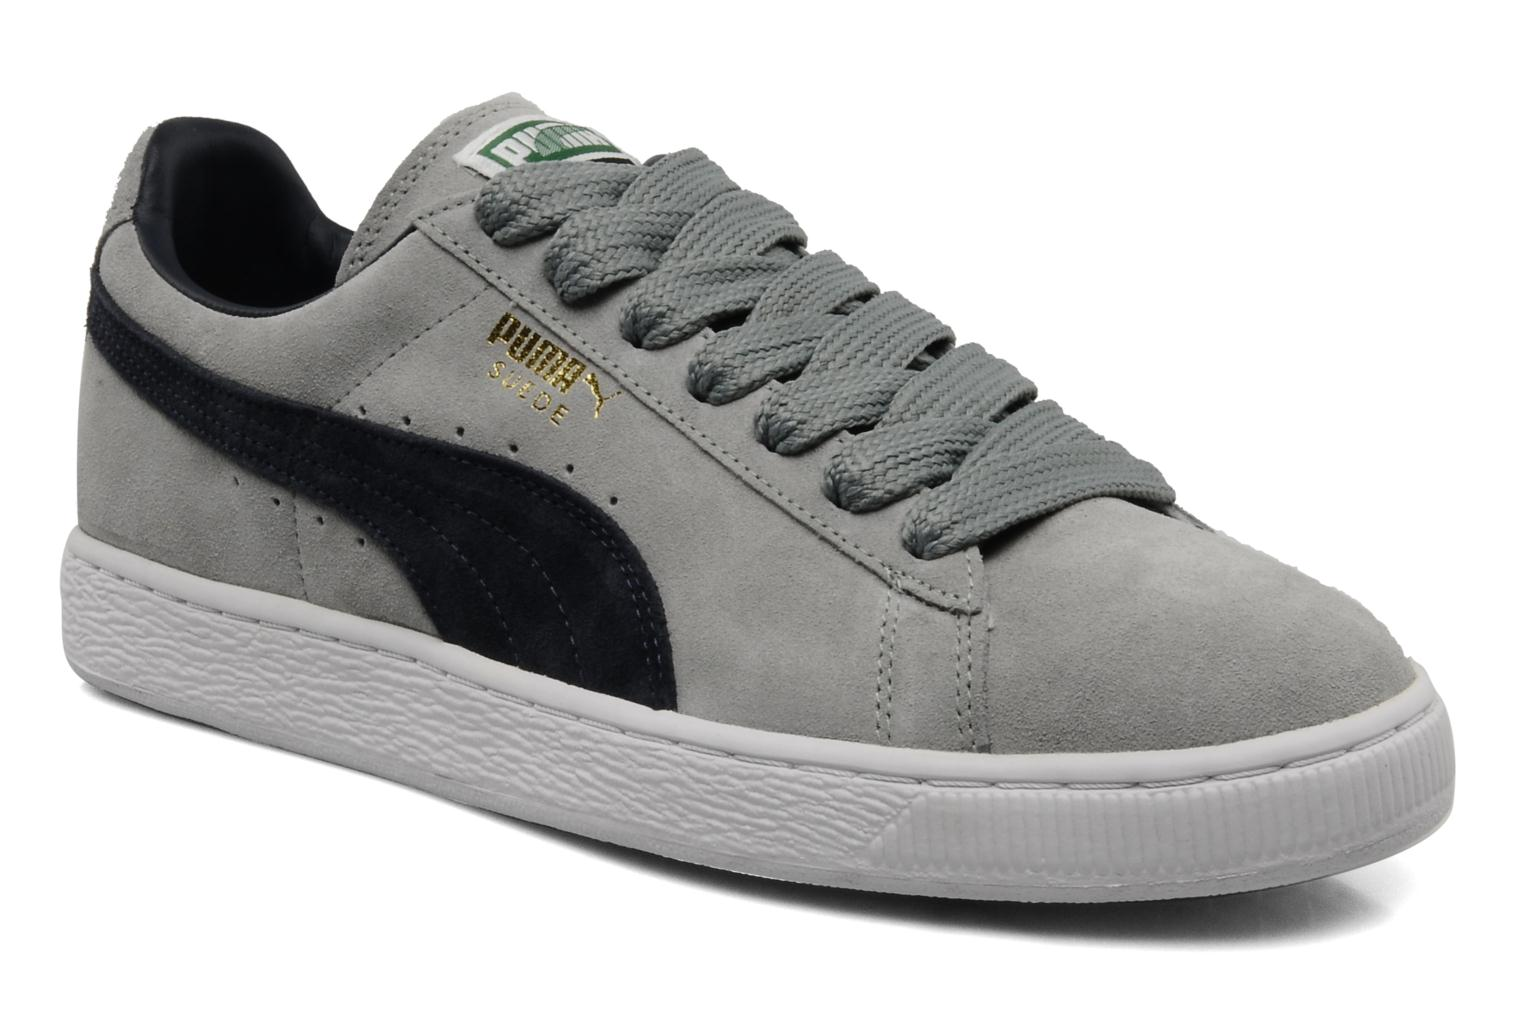 puma suede classic trainers in grey at 85414. Black Bedroom Furniture Sets. Home Design Ideas